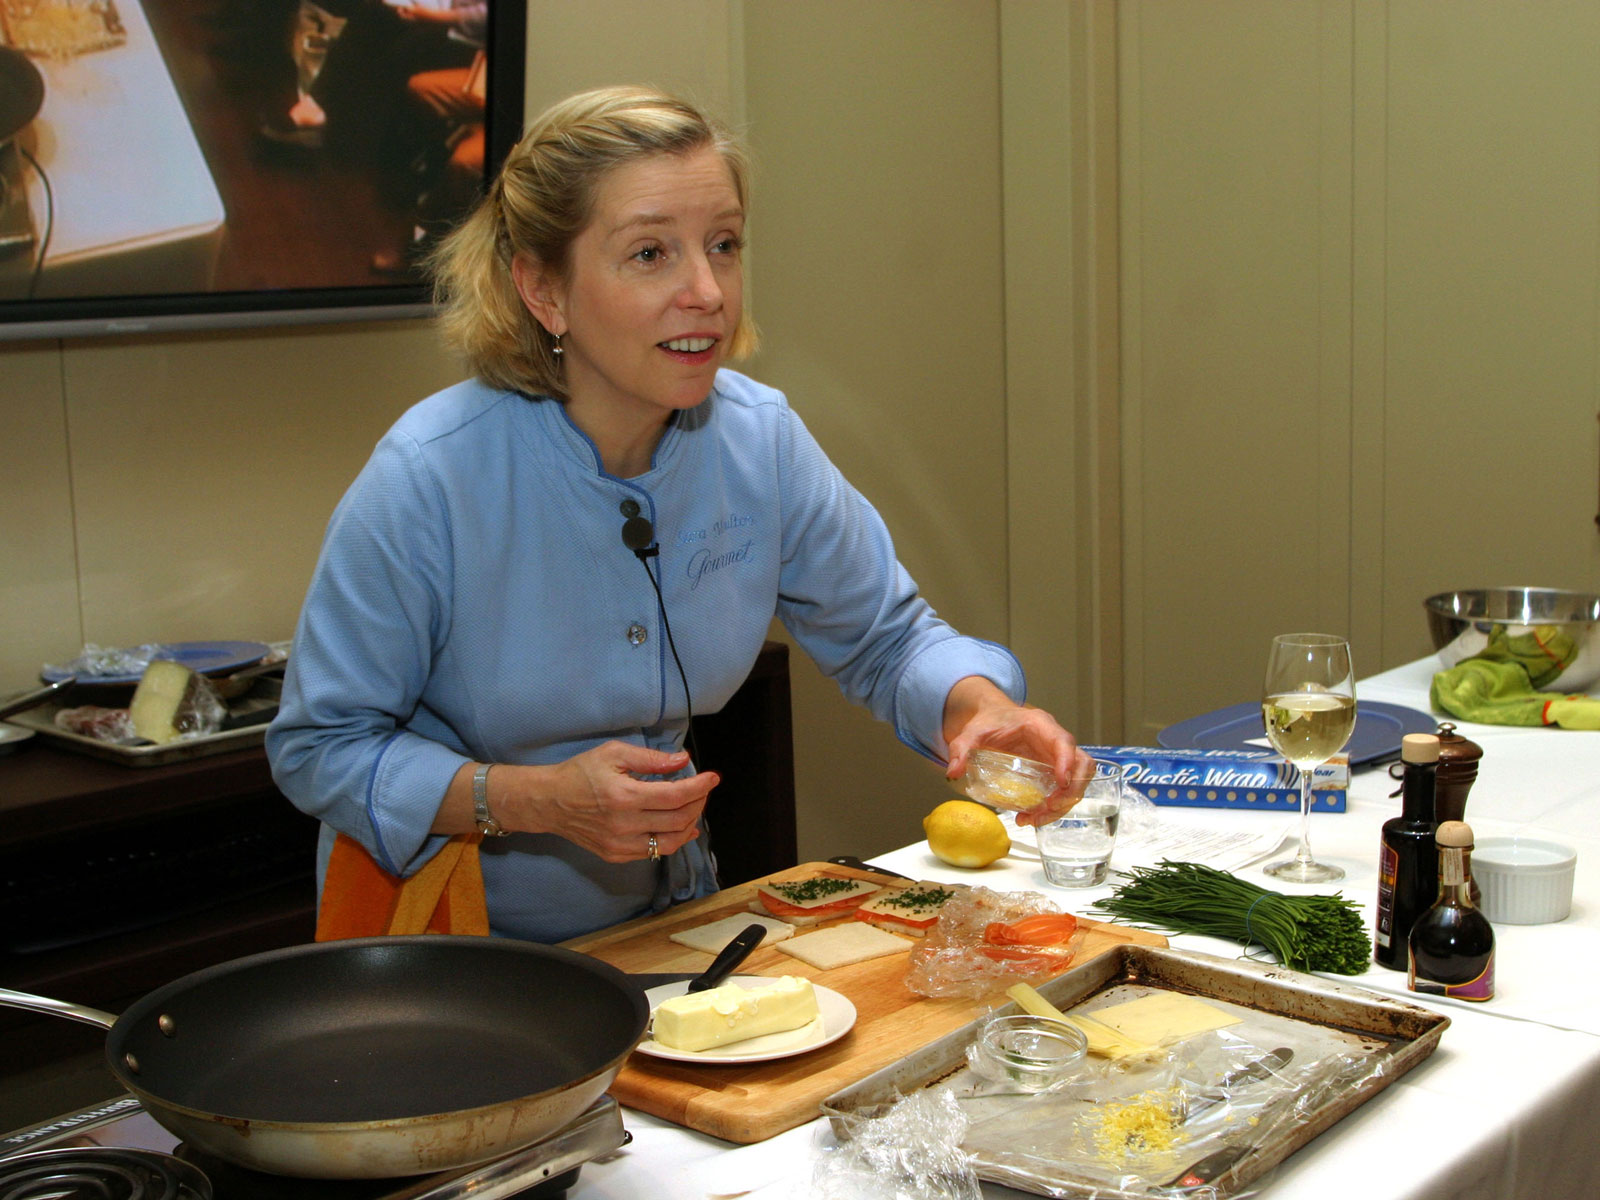 Sara Moulton Explains Why the Restaurant Industry Needs More Women Chefs